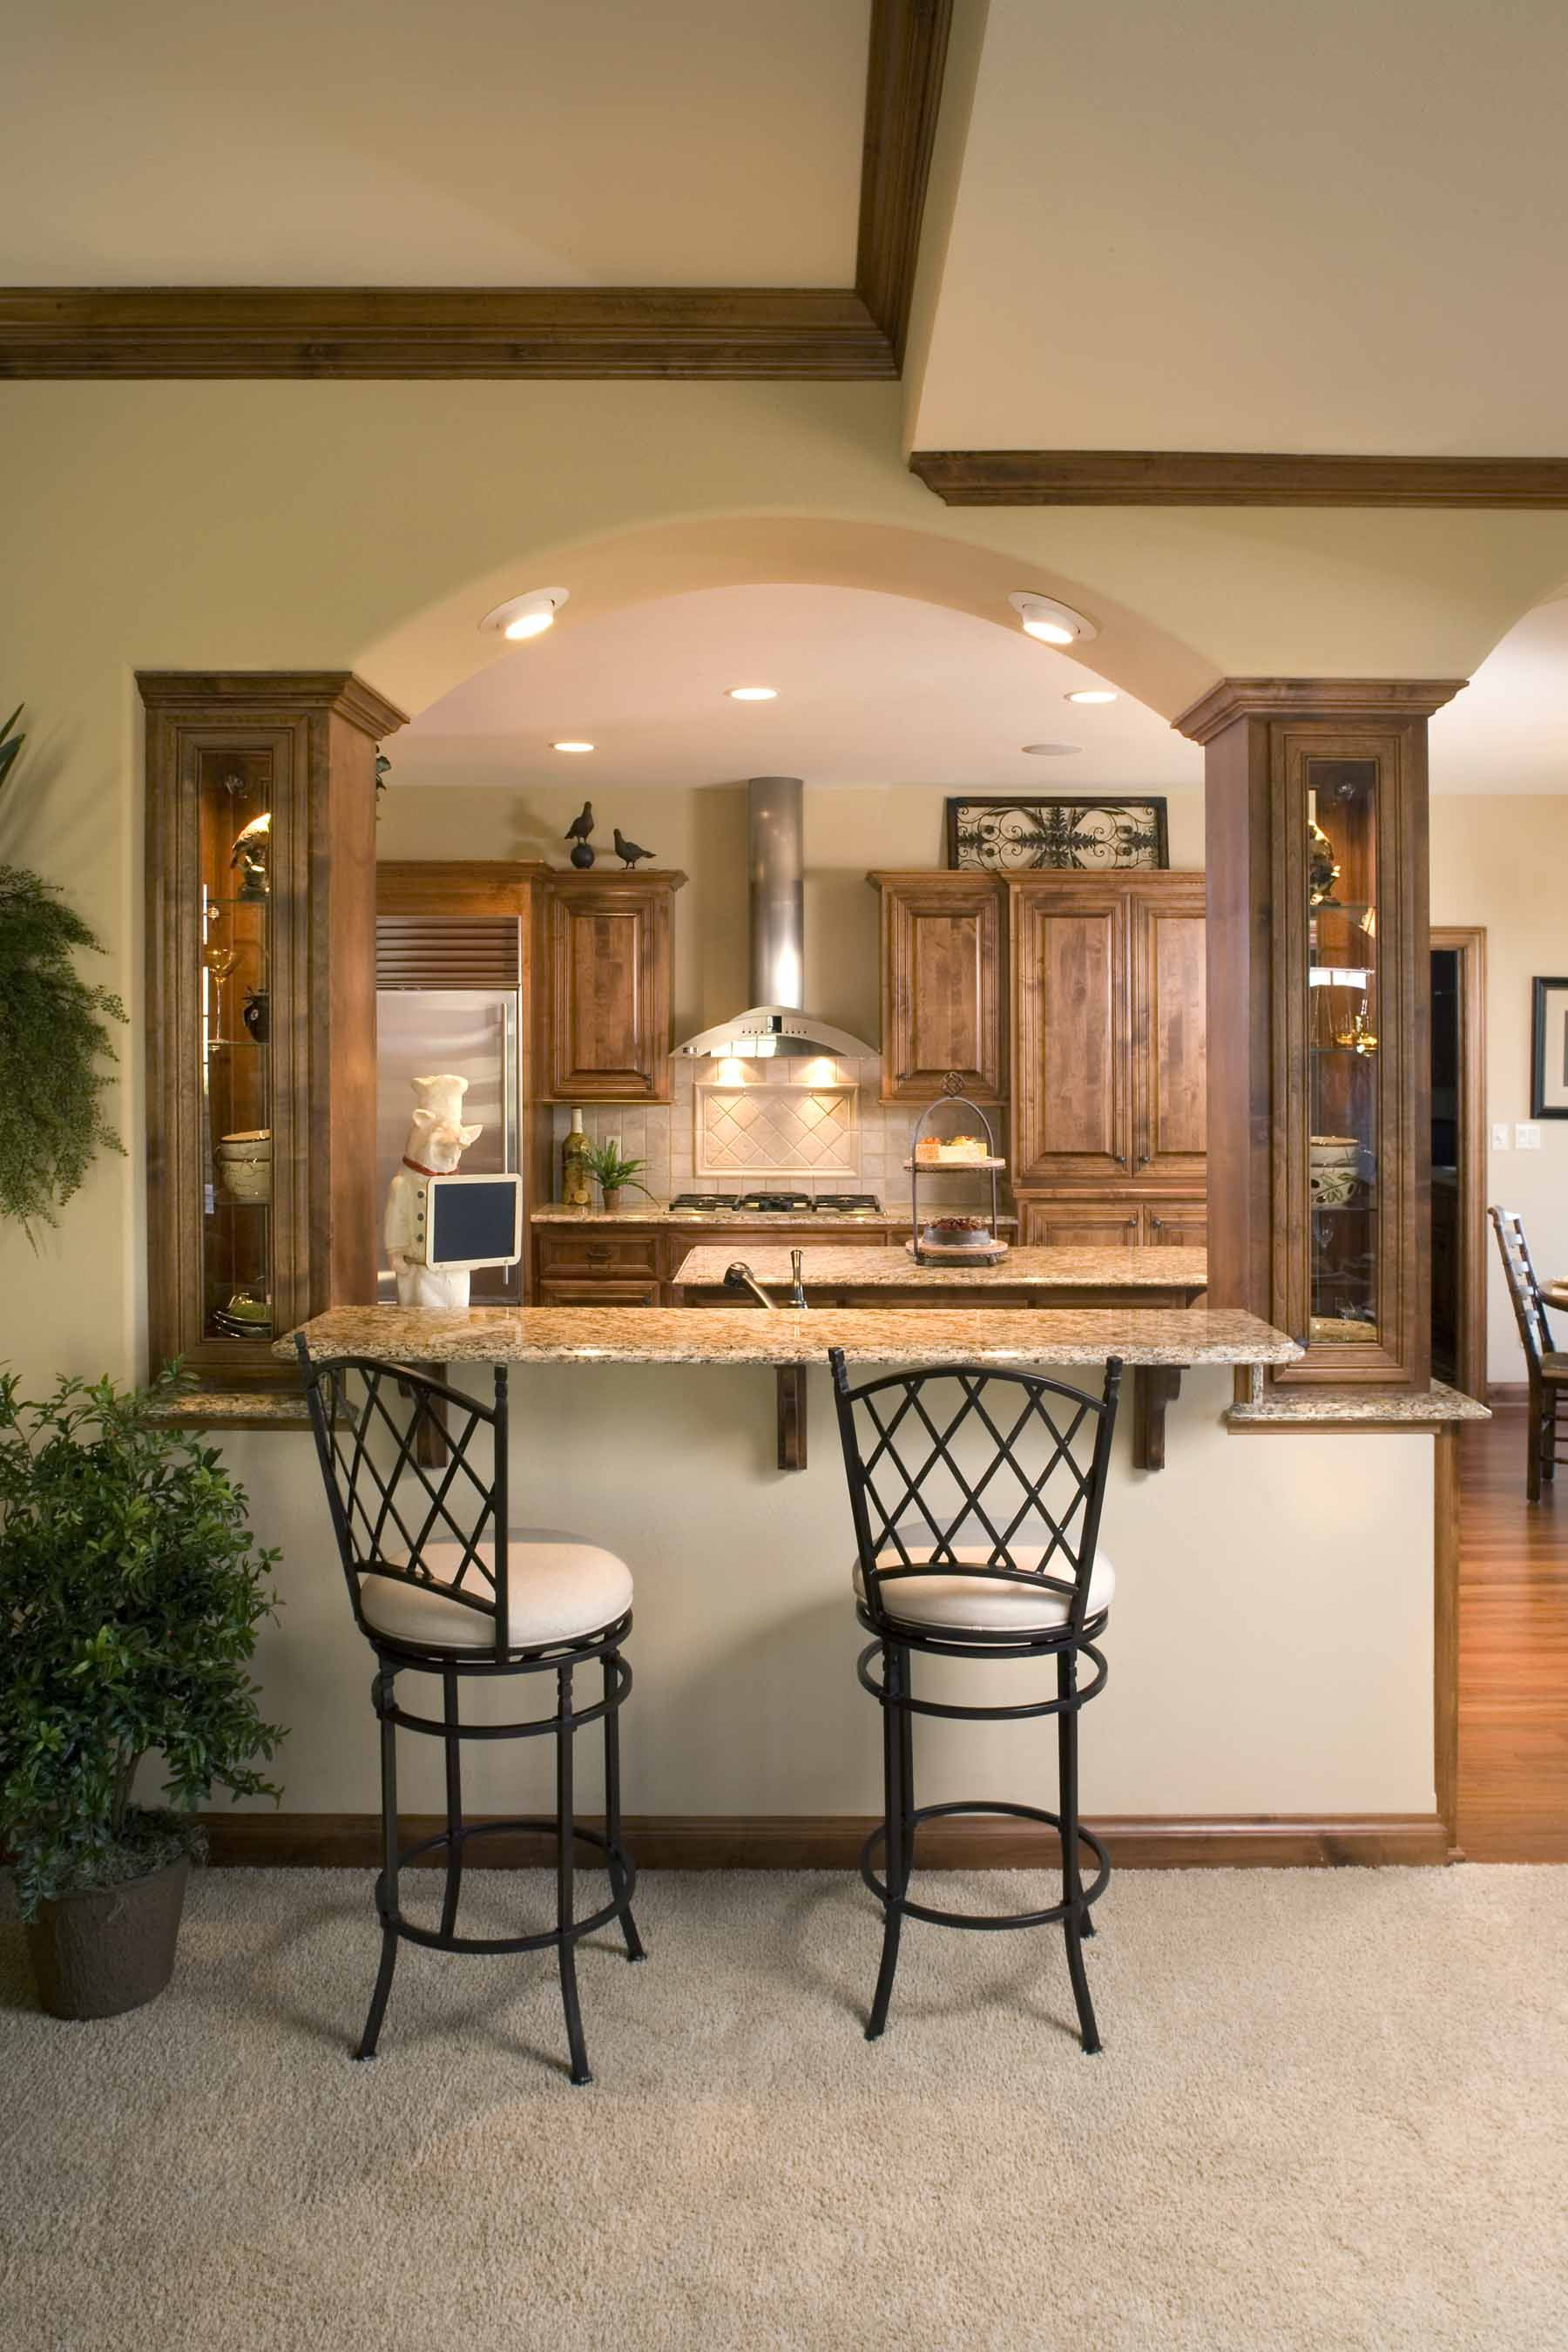 Adding A Snack Bar To Your Kitchen Opens Up The Kitchen